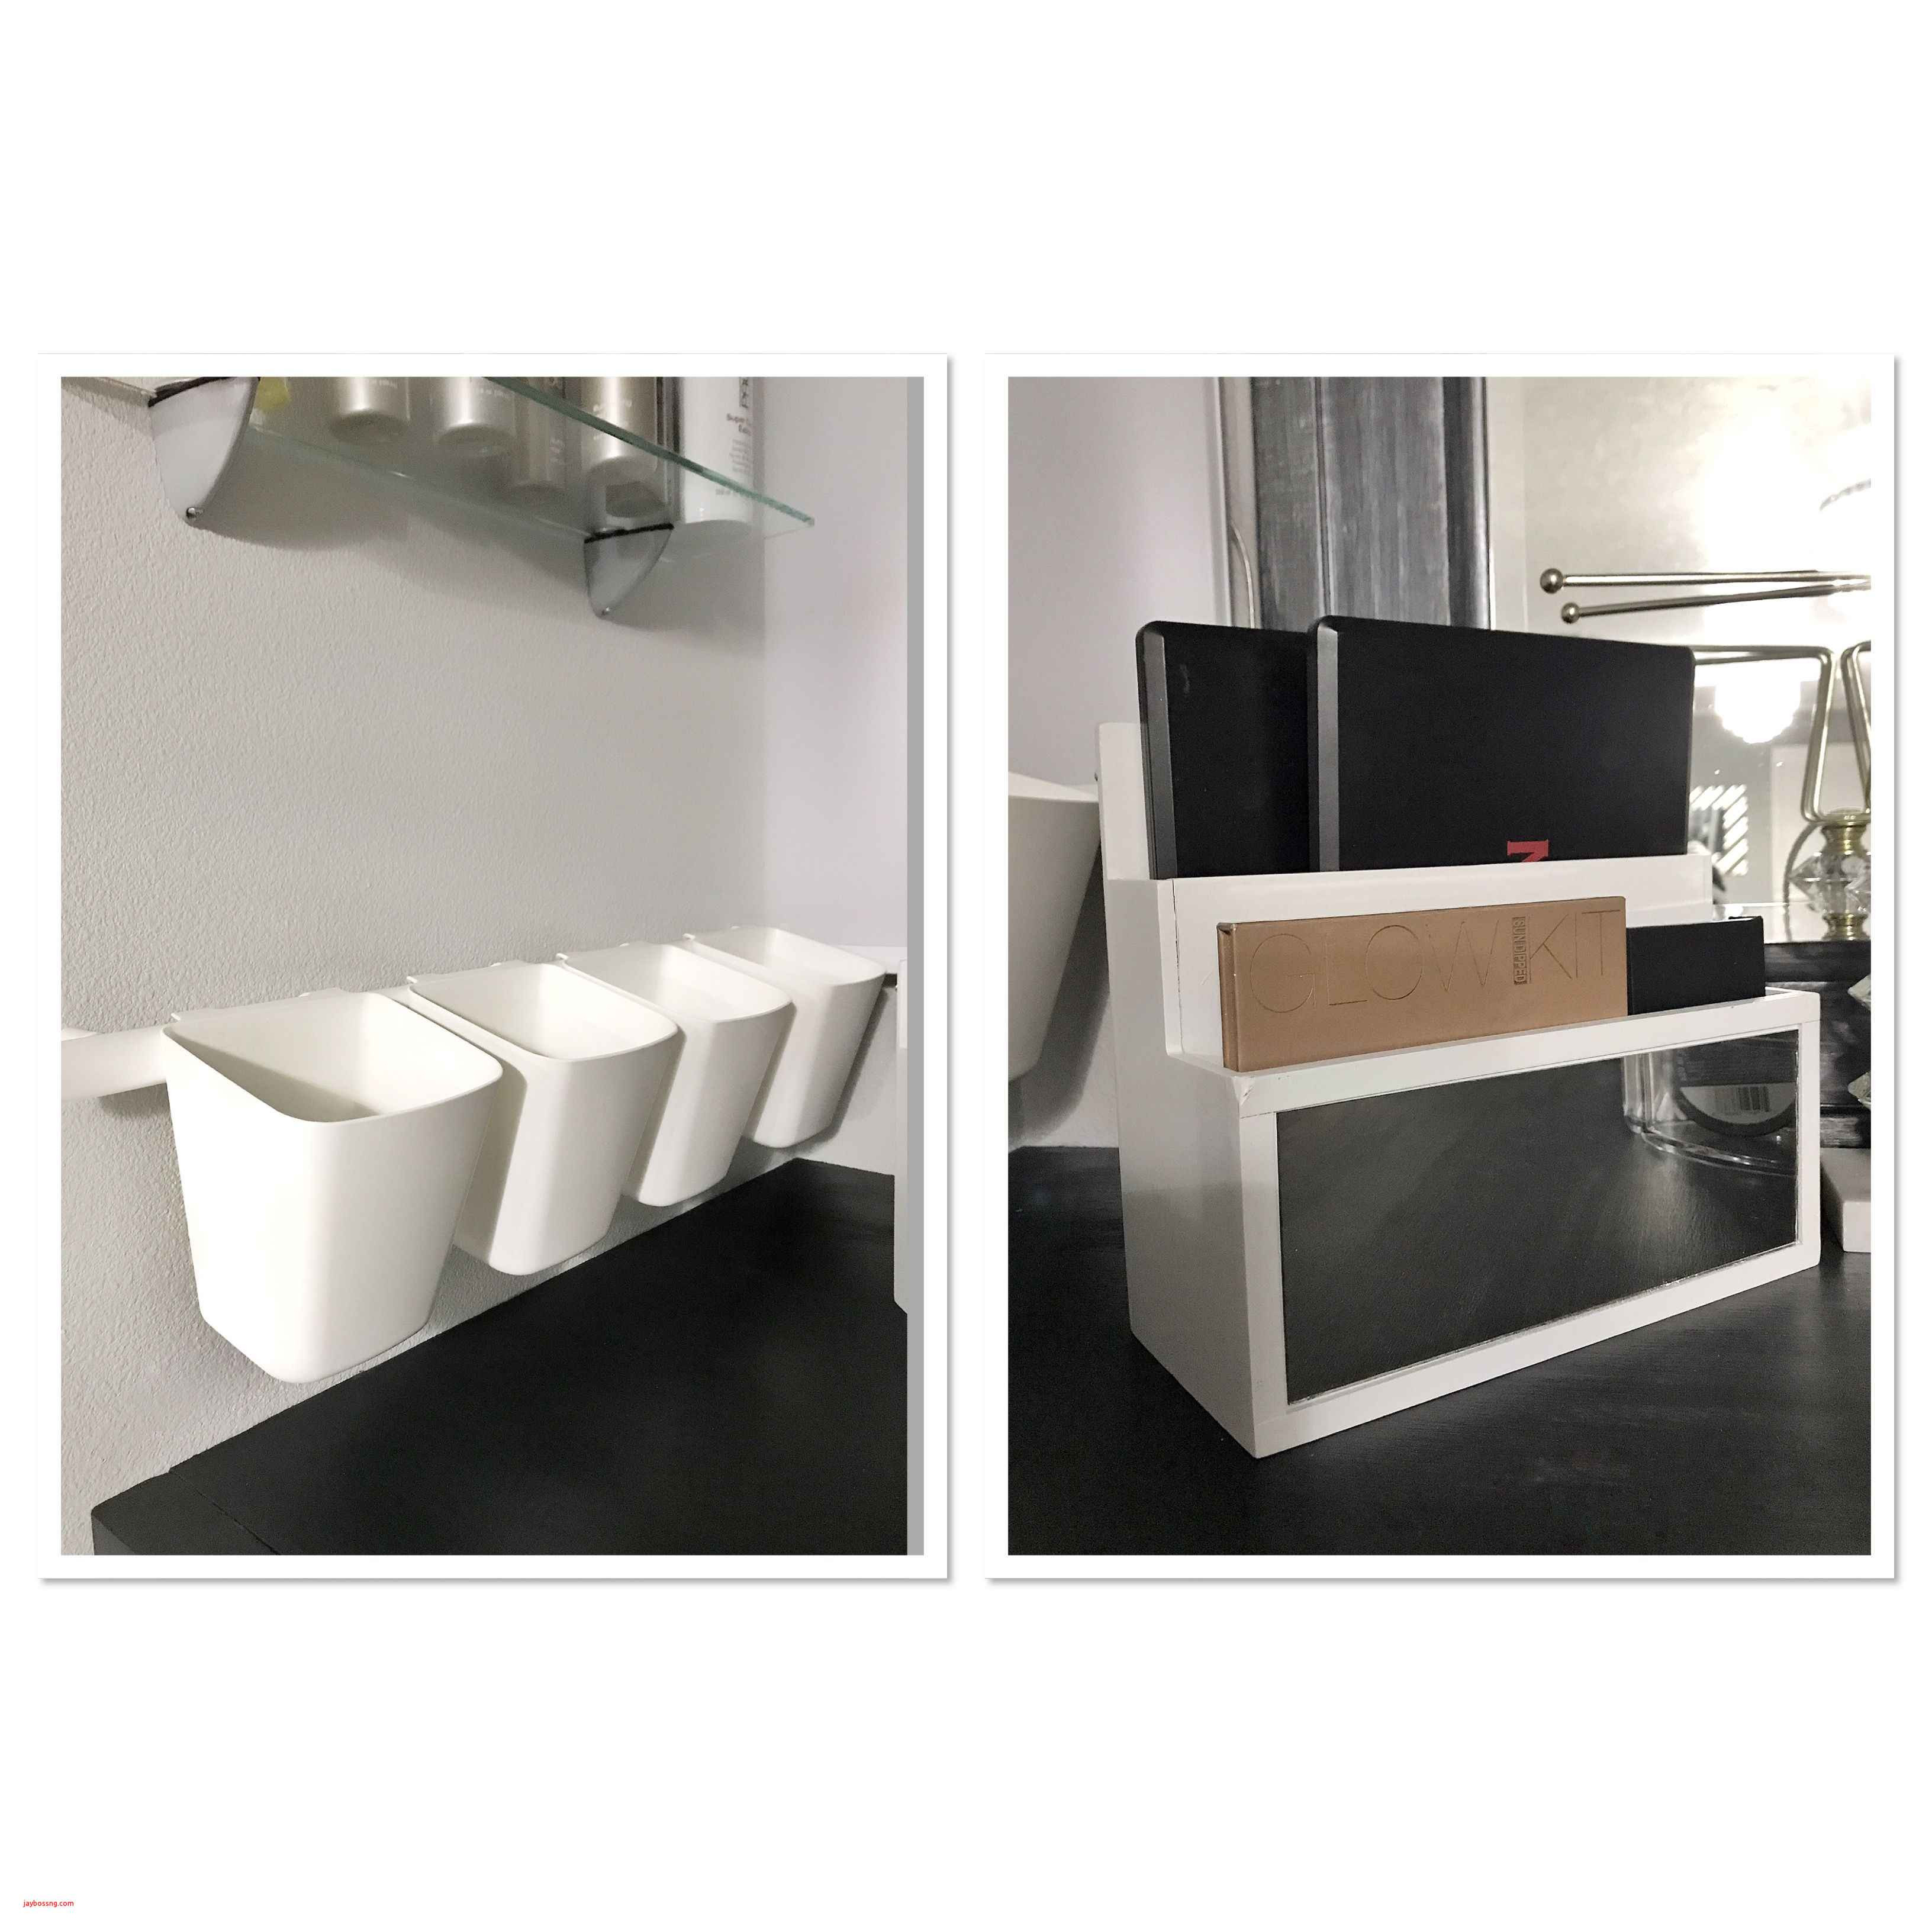 Floor Vases at Home Goods Of Ikea Desks with Storage Beautiful Make Up Storage Ikea and Home for Ikea Desks with Storage Beautiful Make Up Storage Ikea and Home Goods S Perfect for A